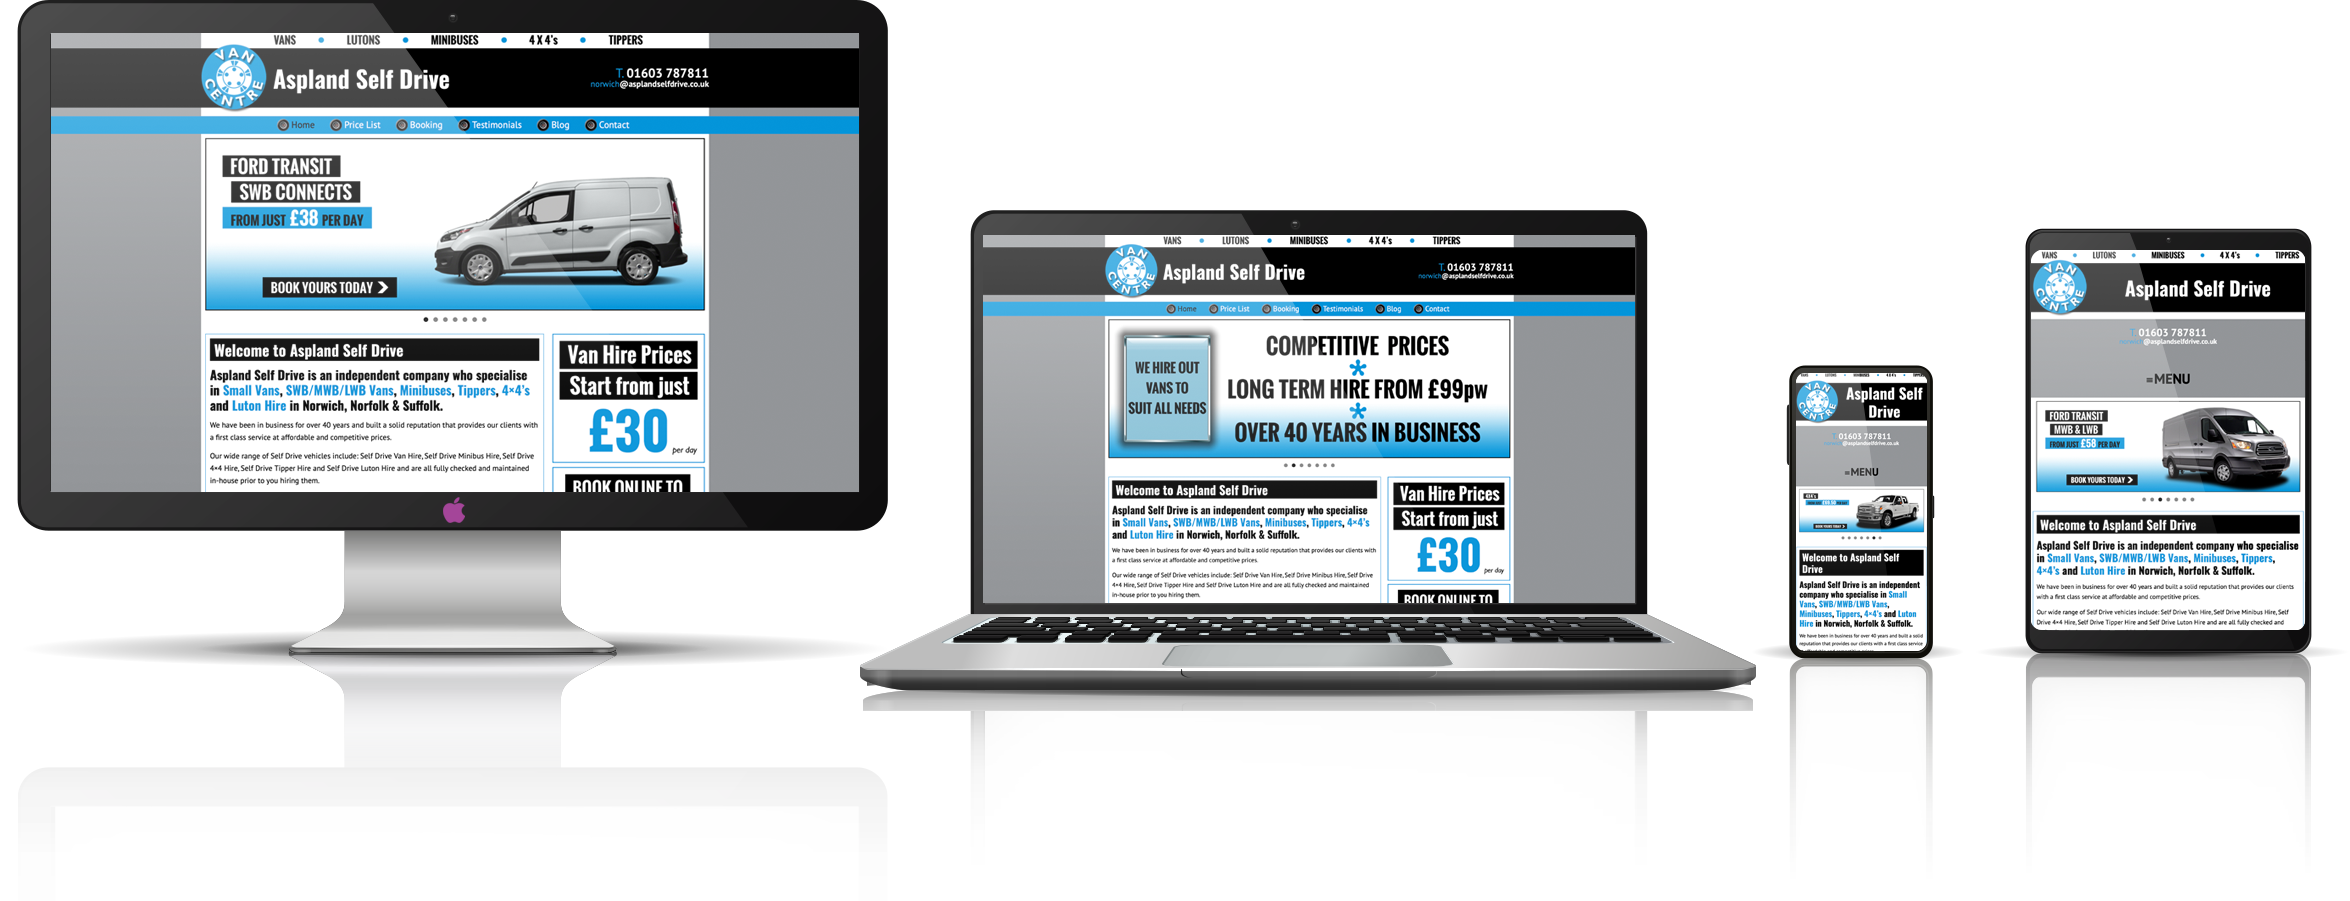 The Aspland Self Drive fully responsive mock-up images showing desktop, laptop, tablet, and mobile phone devices.